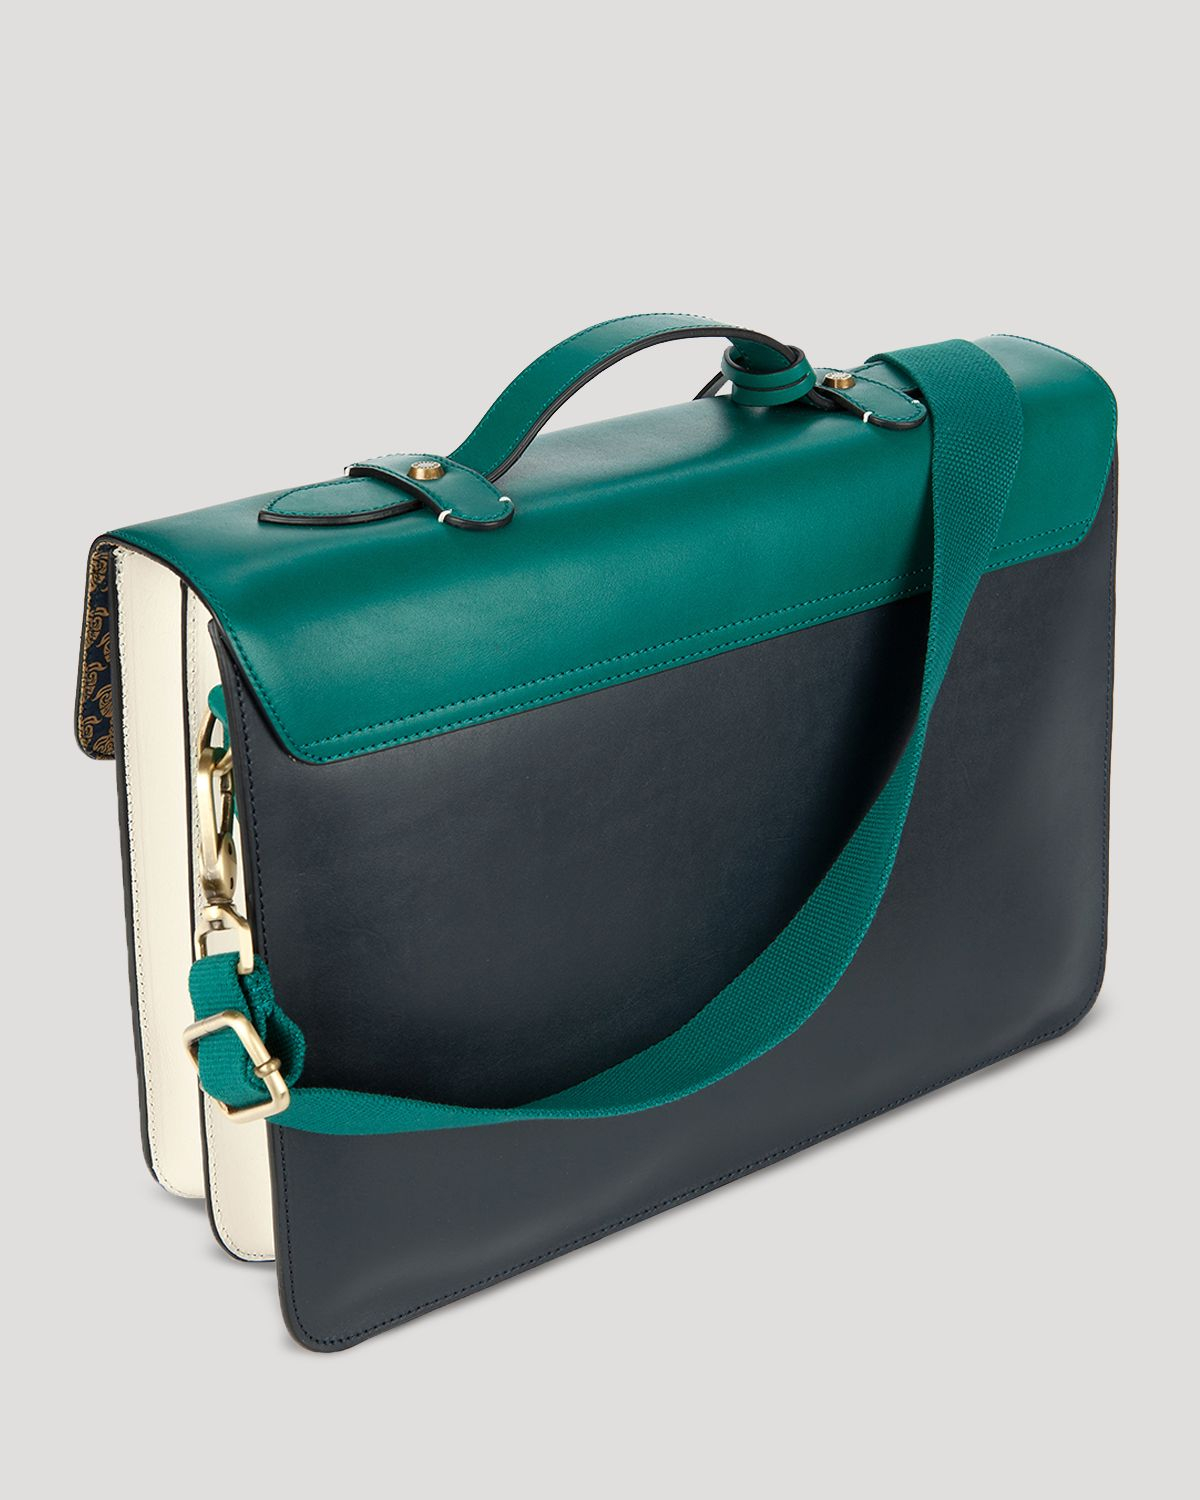 4264d4ce3eabfc Lyst - Ted Baker Harlemm Mixed Leather Satchel in Green for Men